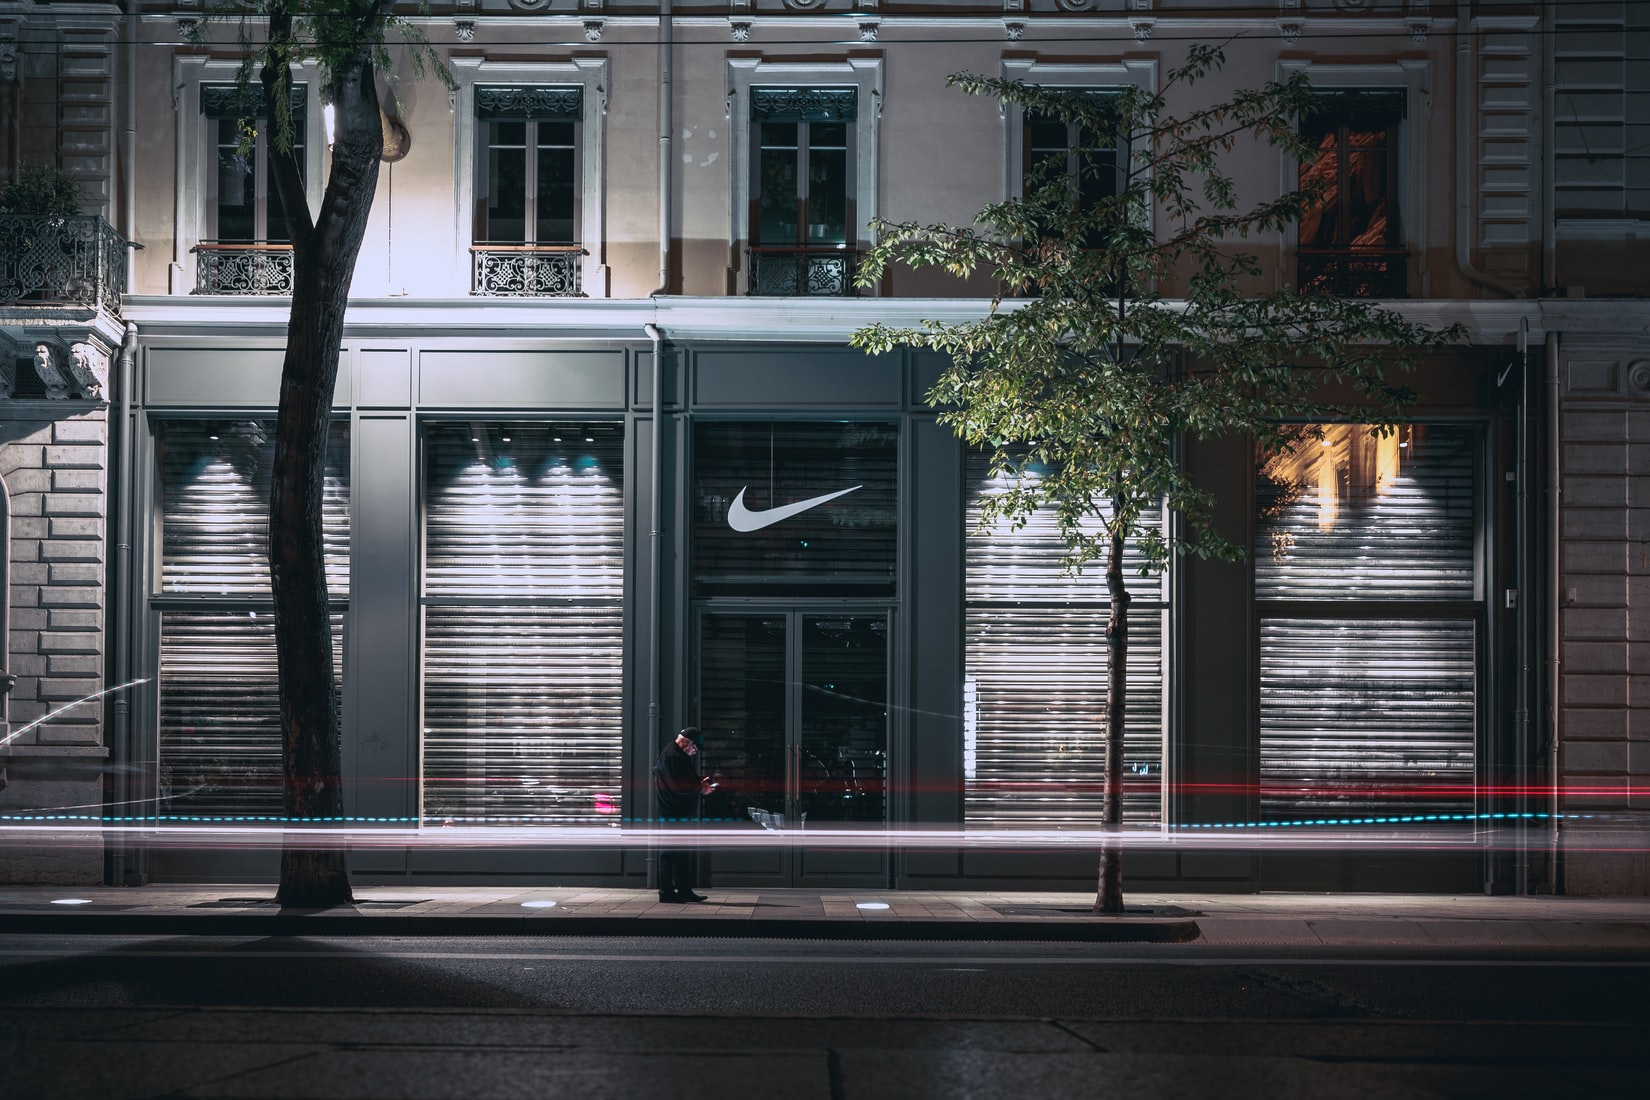 Nike VP Resigns After Family Ties to Reseller Revealed